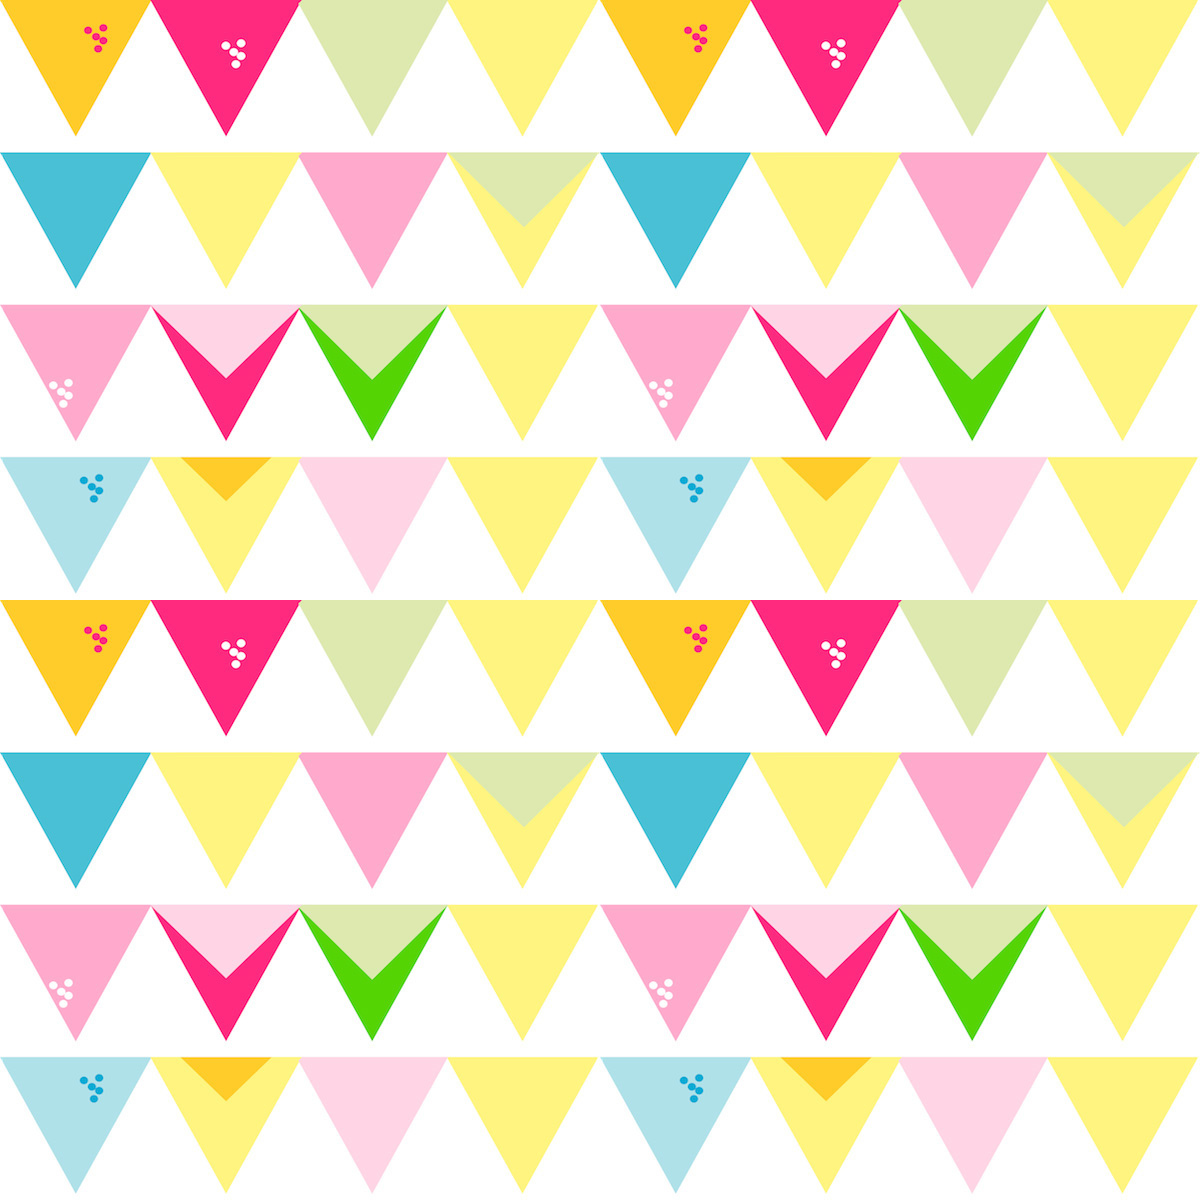 This is an image of Declarative Free Scrapbook Paper Printable